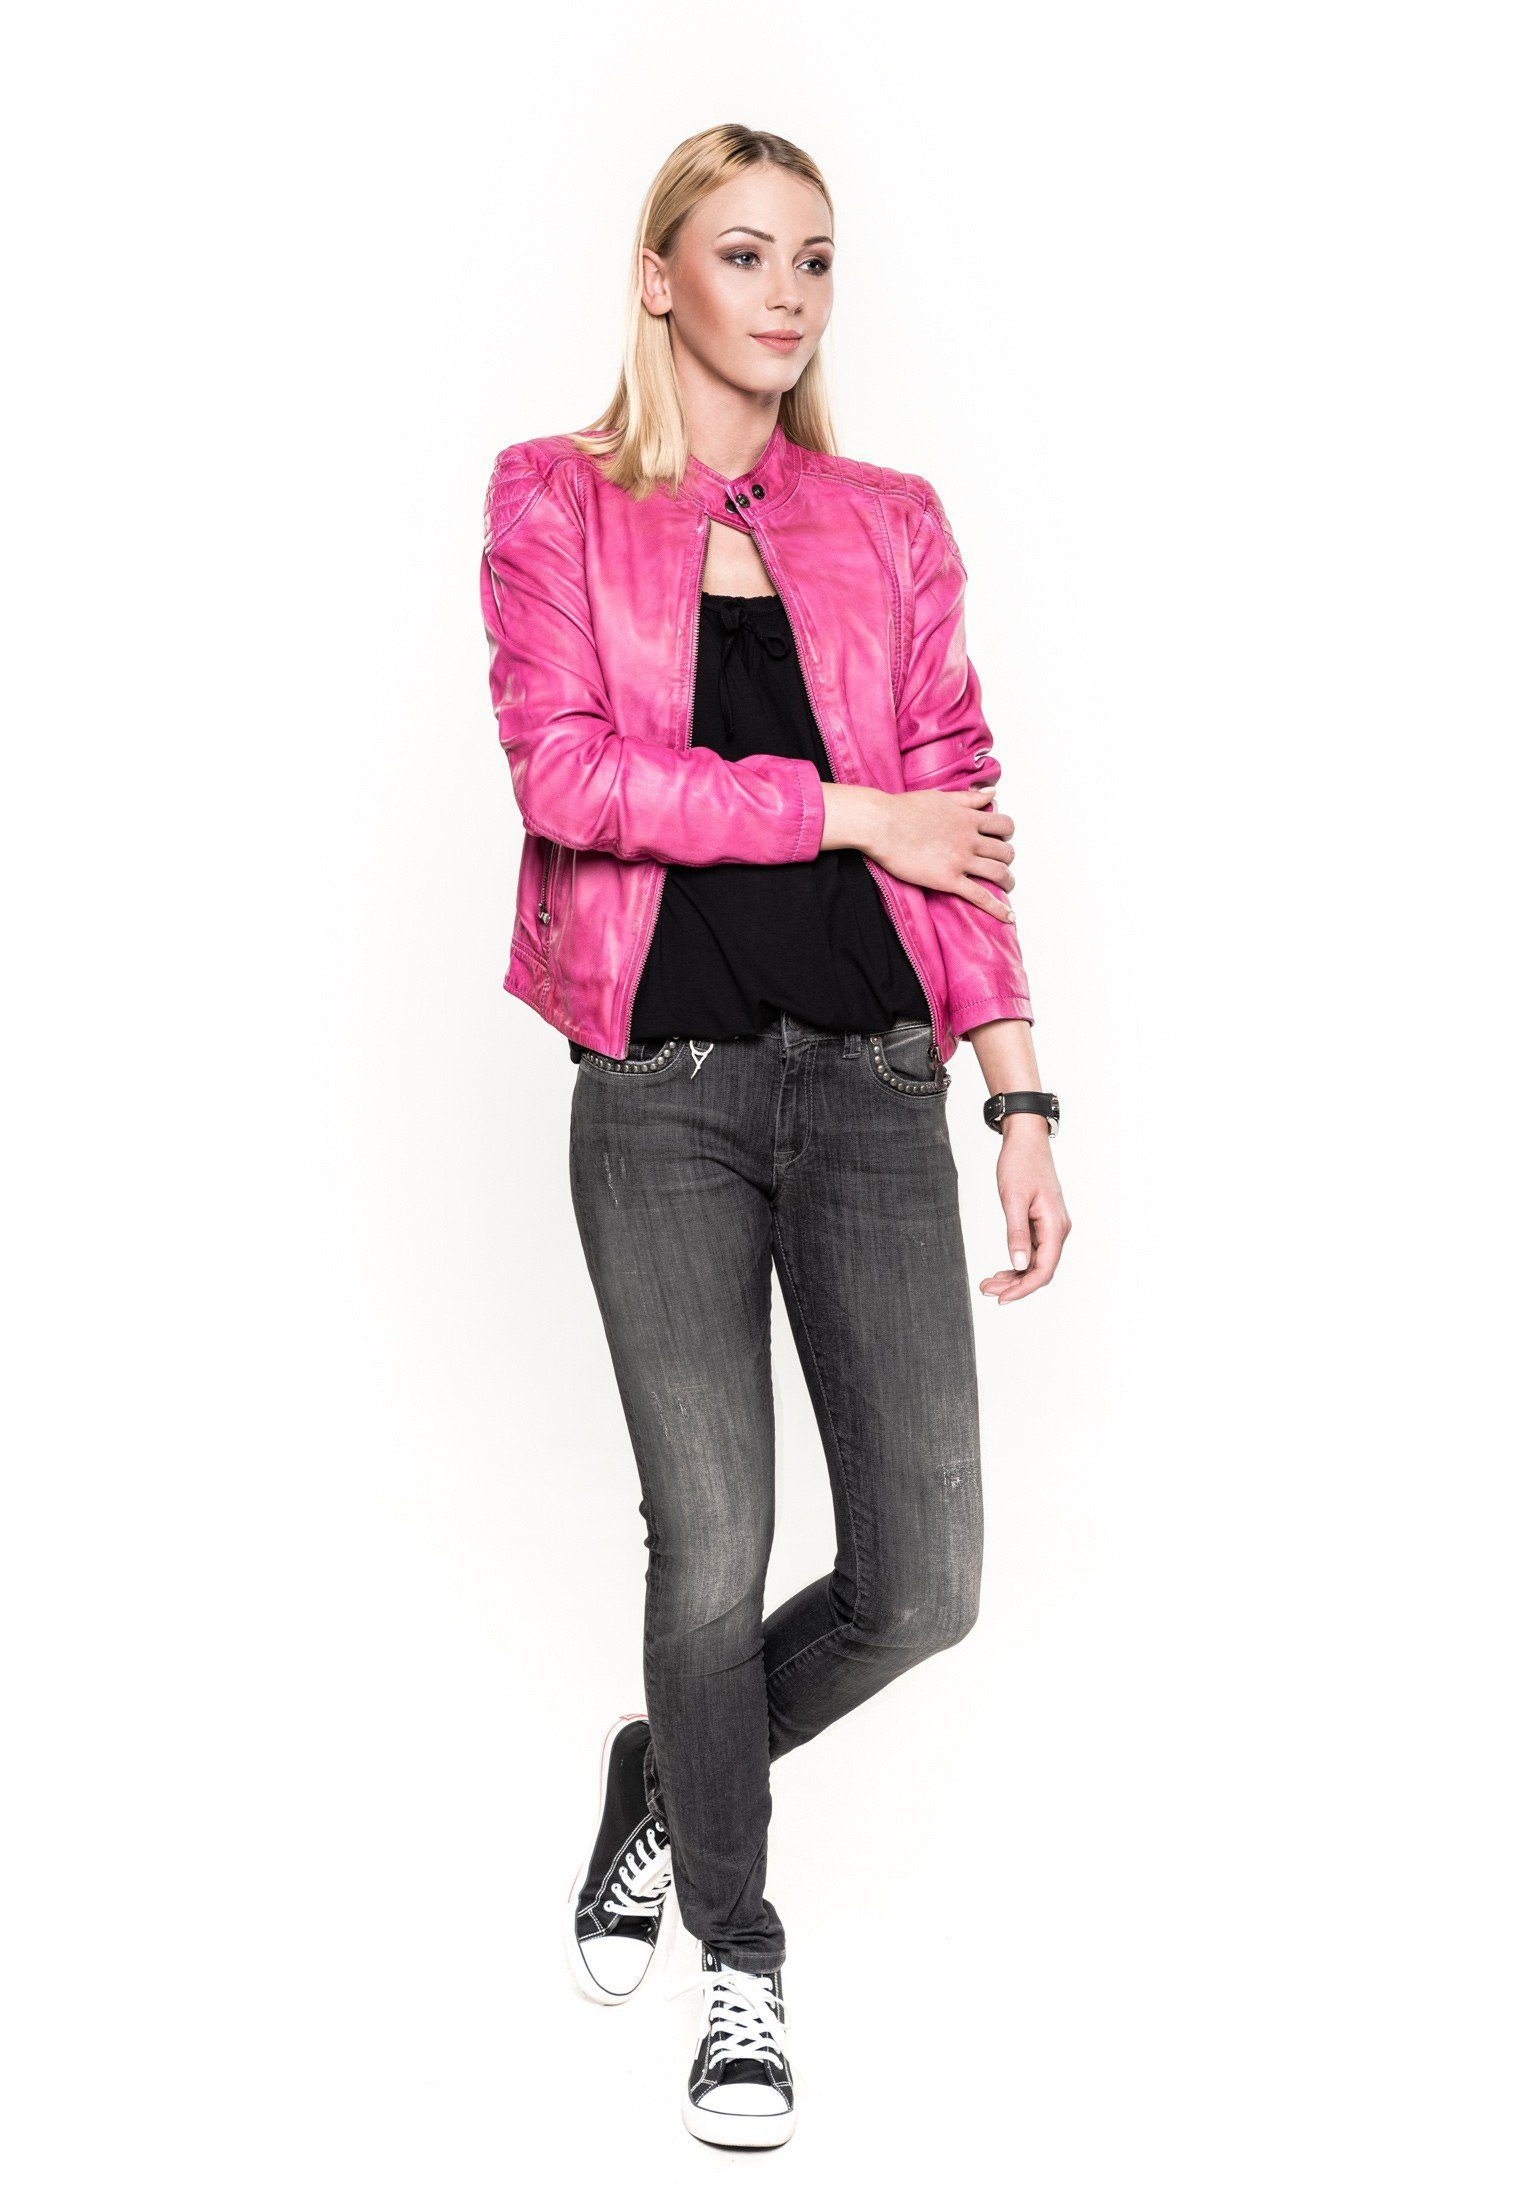 Suri Kaufen No Slim fit Online »jilly jeans Qualitat Frey 1«Slim Elastischer Fit In mNvnyO80w